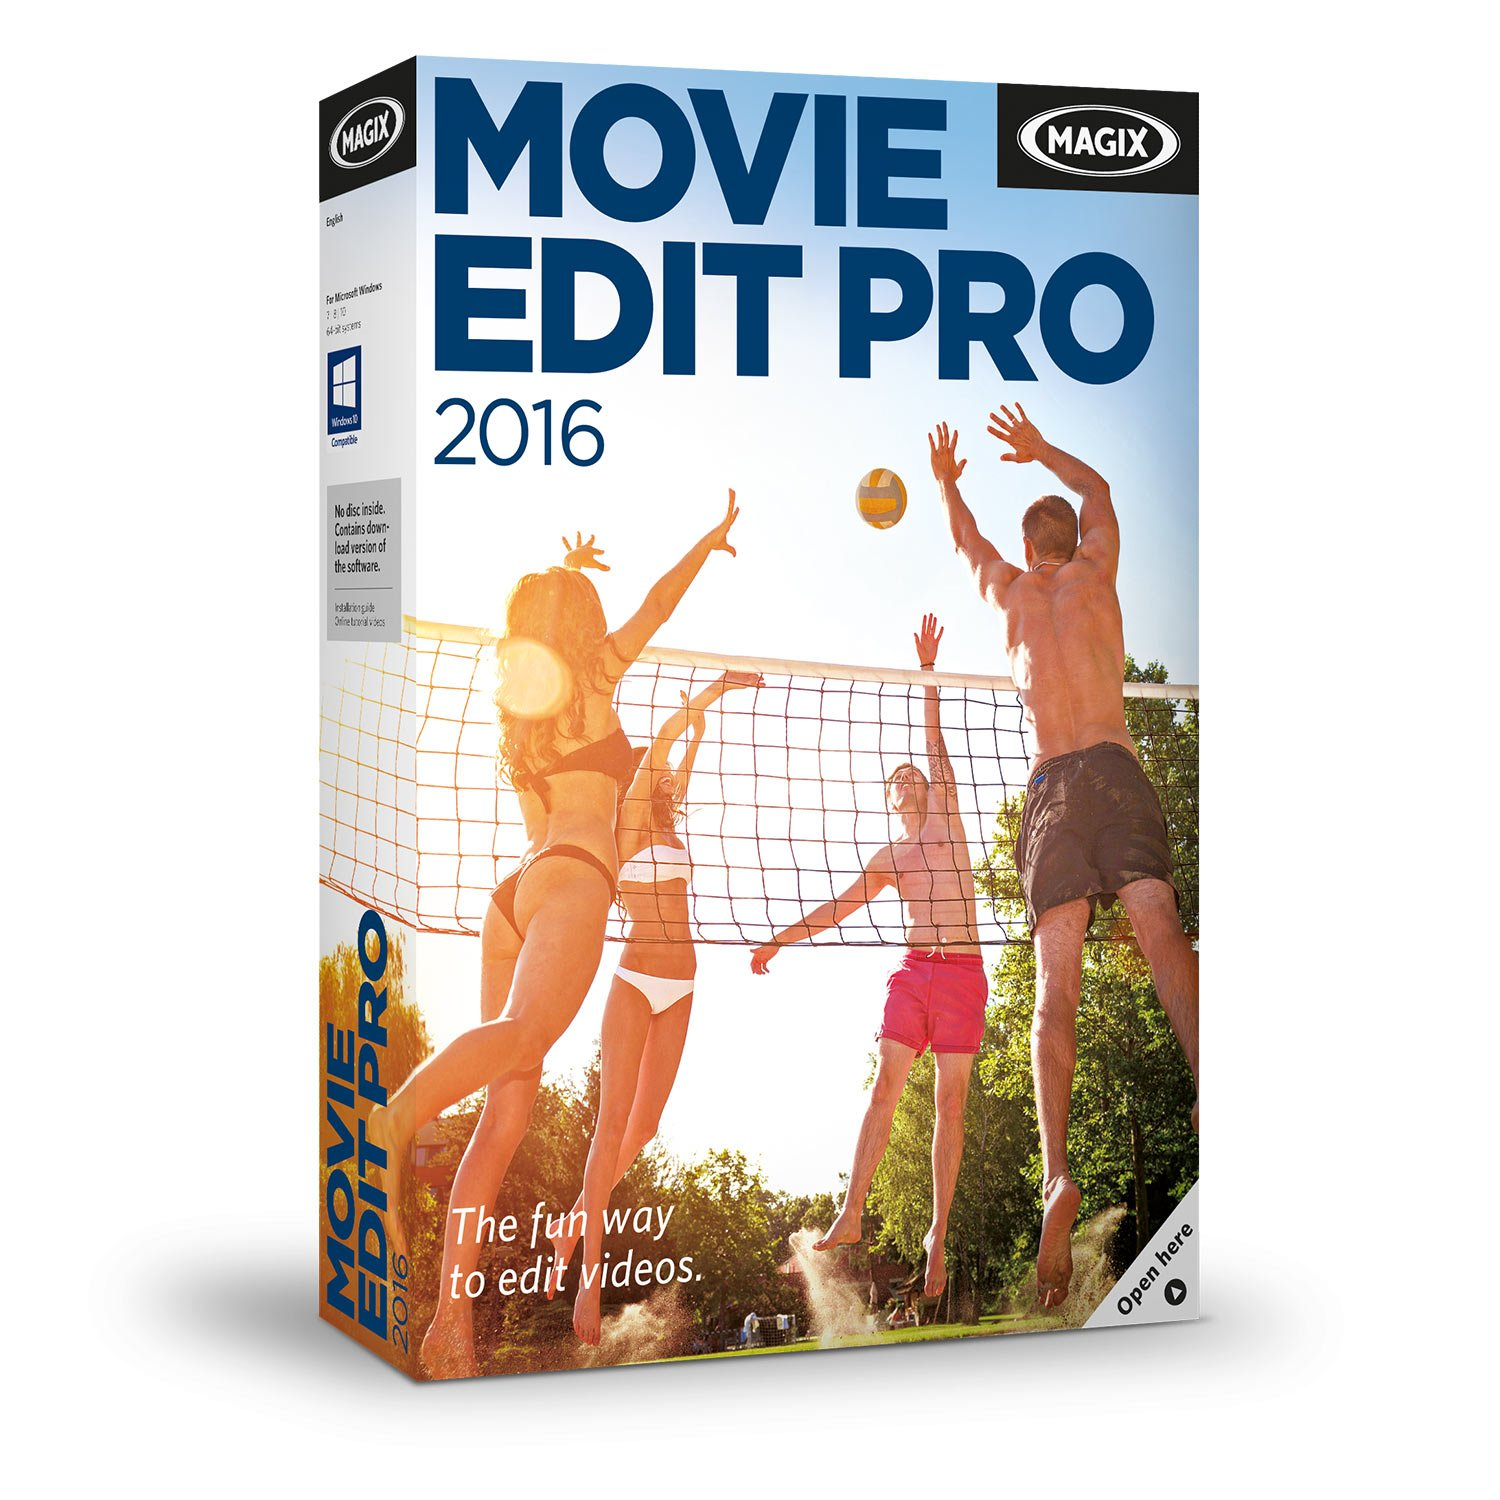 Amazoncom Magix Movie Edit Pro 2016 Software